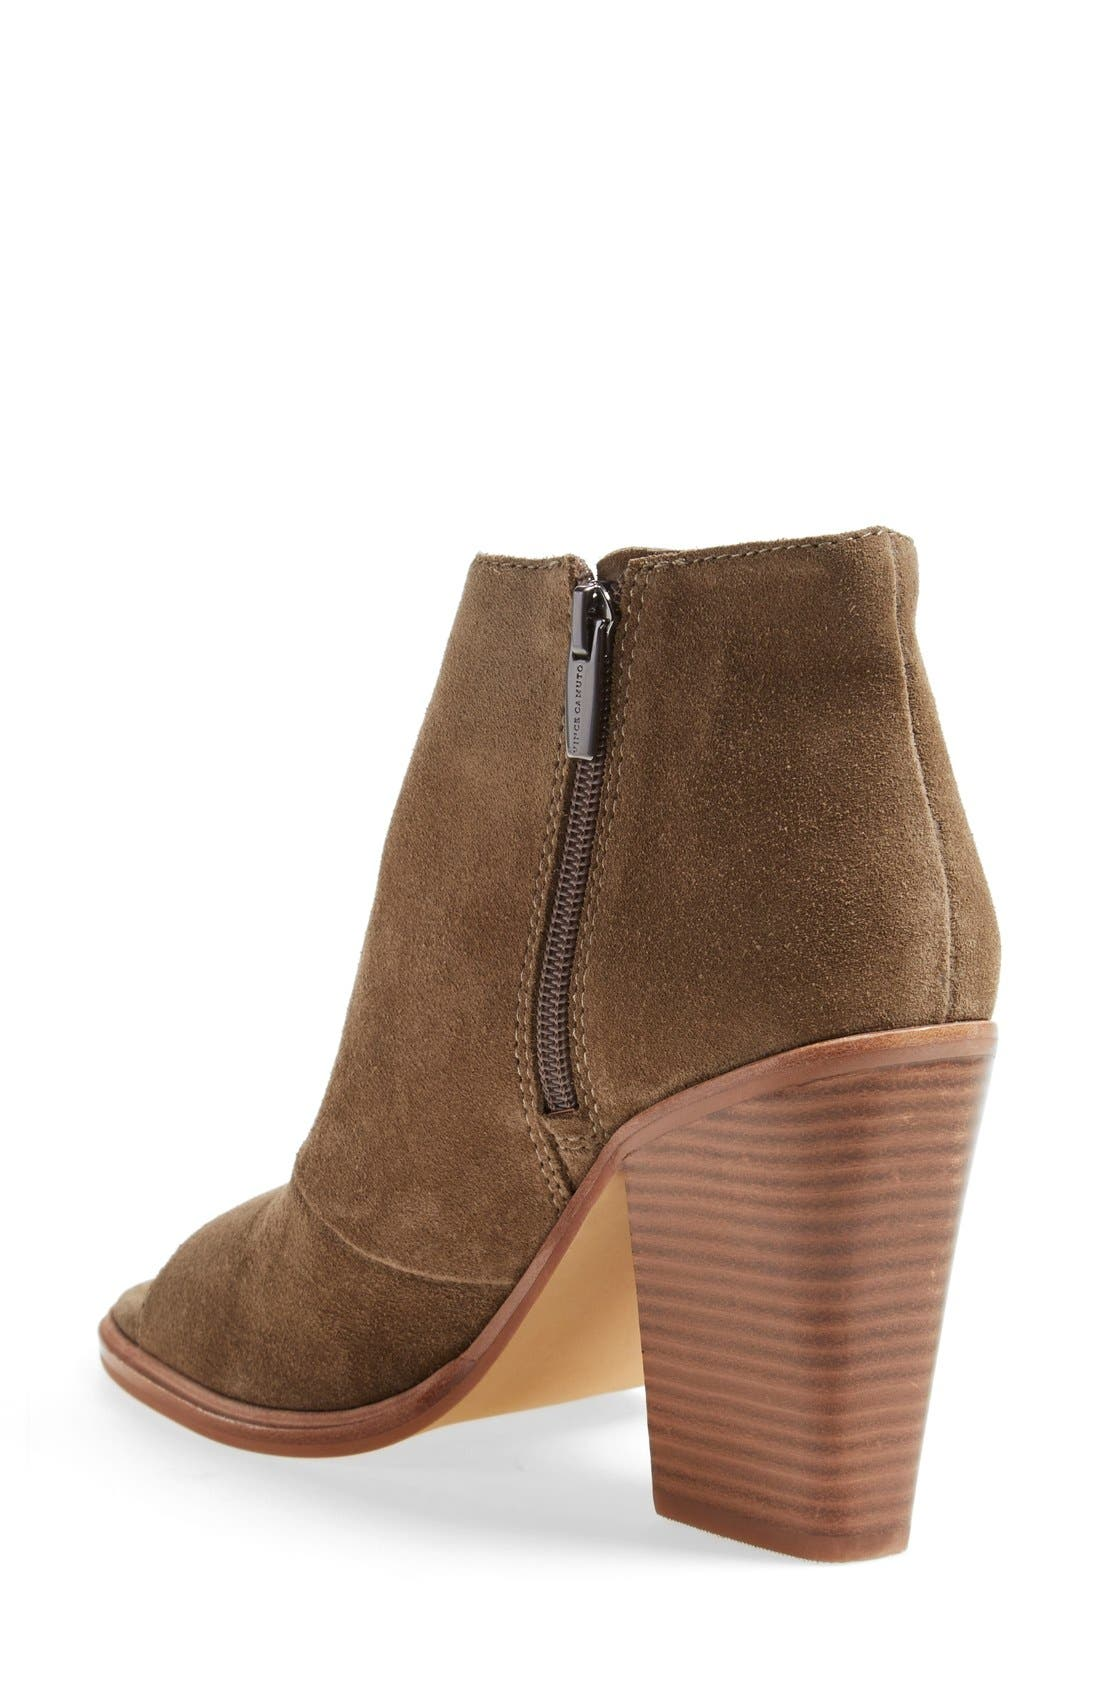 Alternate Image 2  - Vince Camuto 'Katleen' Peep Toe Bootie (Women) (Nordstrom Exclusive)